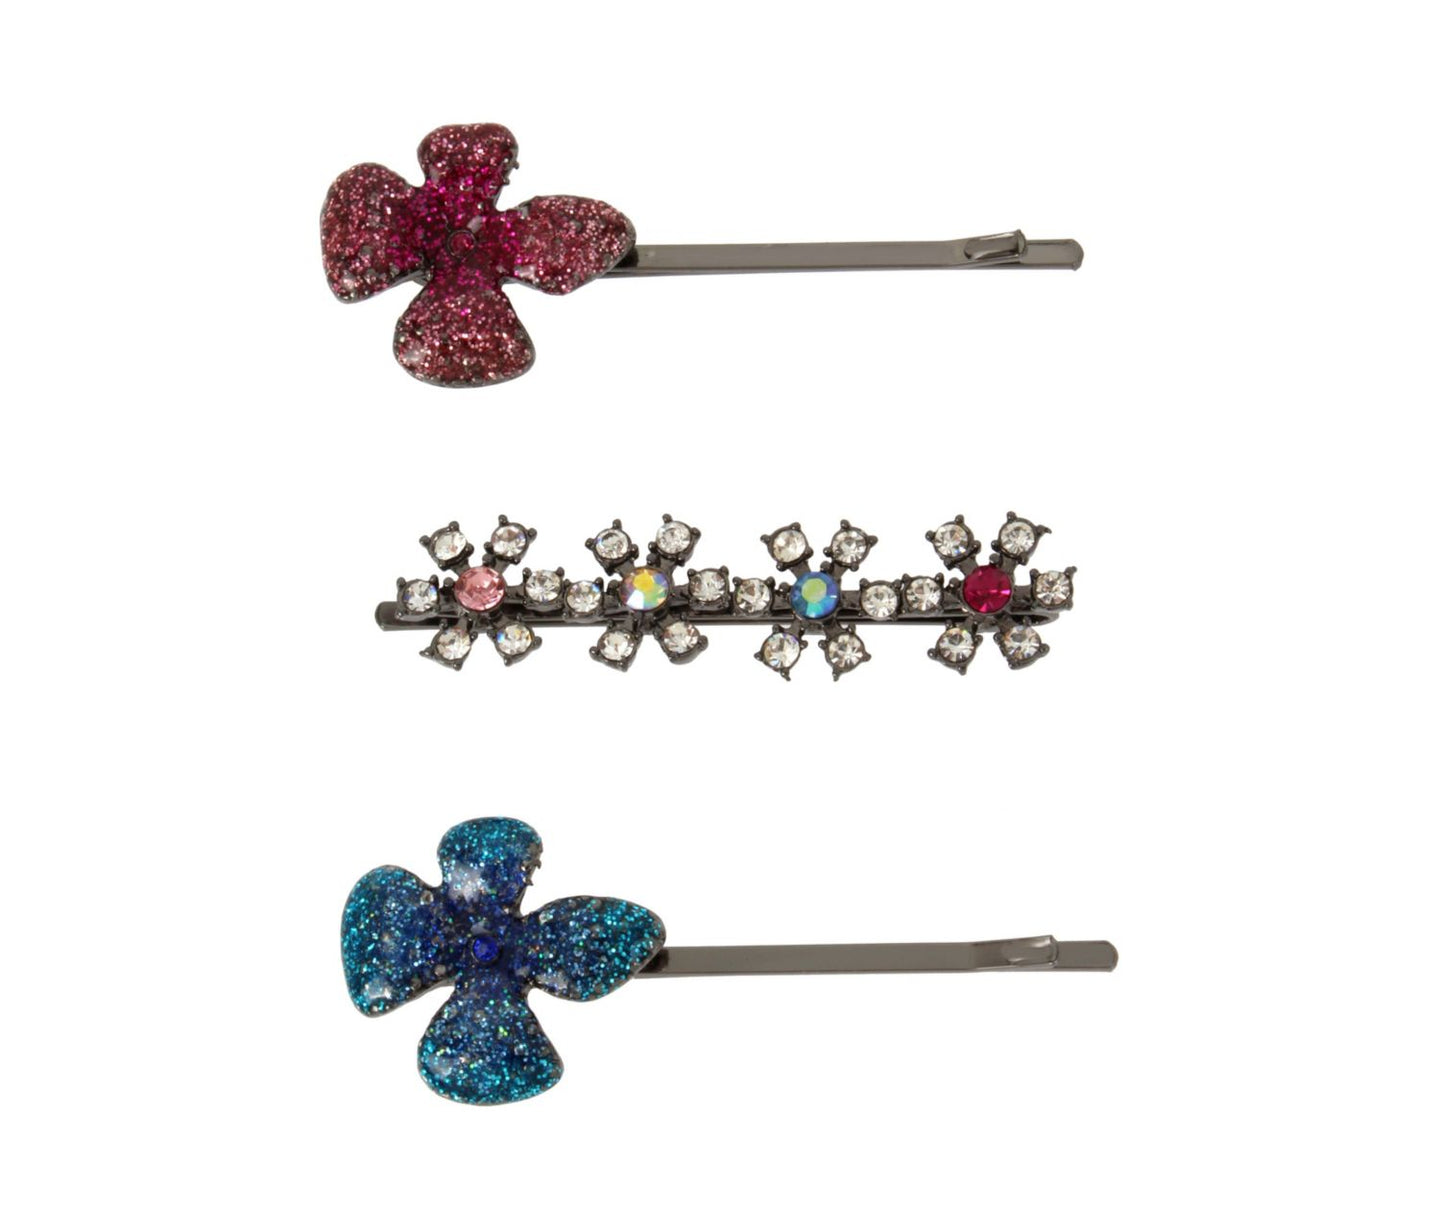 FAIRYTALE DREAMS HAIR PIN SET MULTI - JEWELRY - Betsey Johnson